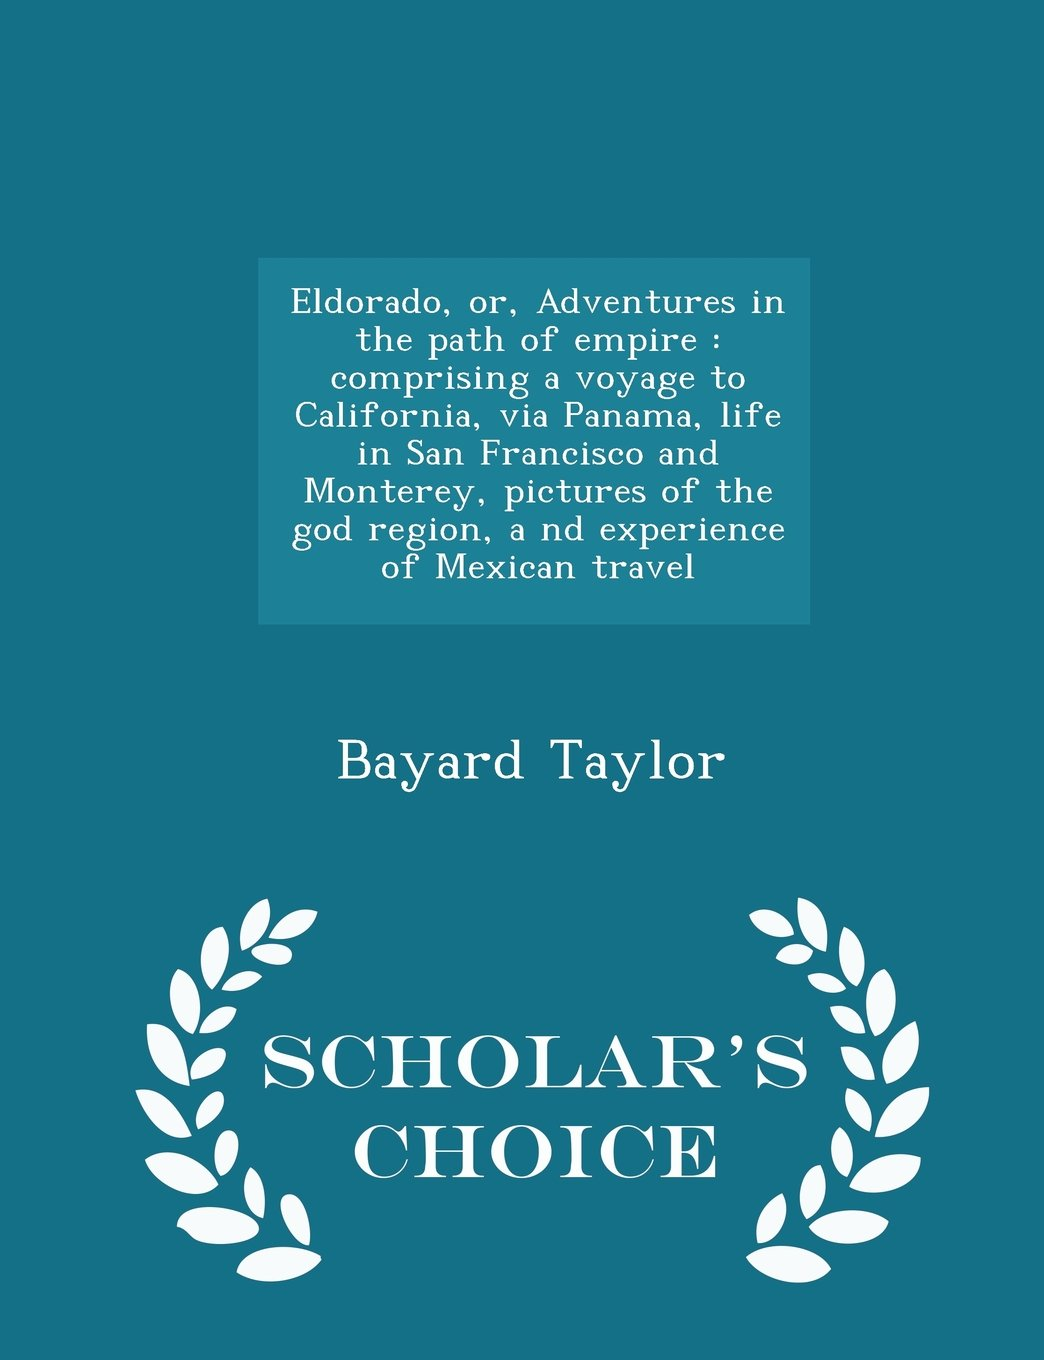 Eldorado, or, Adventures in the path of empire: comprising a voyage to California, via Panama, life in San Francisco and Monterey, pictures of the god ... of Mexican travel  - Scholar's Choice Edition PDF